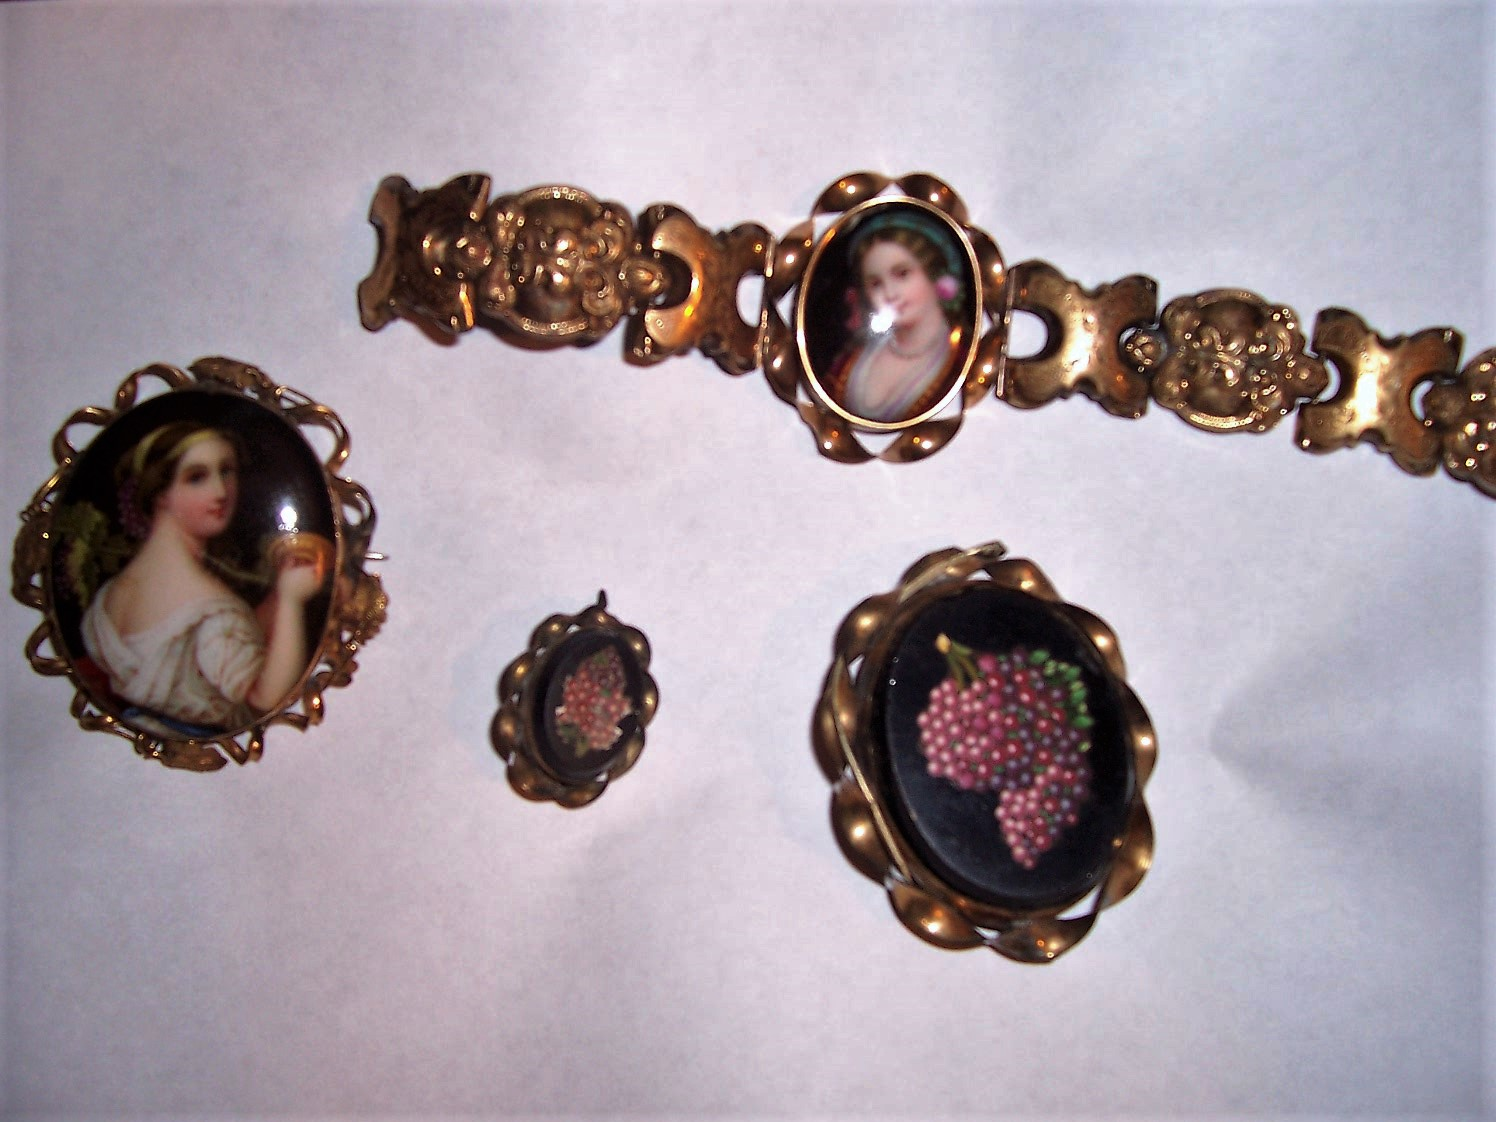 EBAY Antique jewerly from Bubs house.JPG